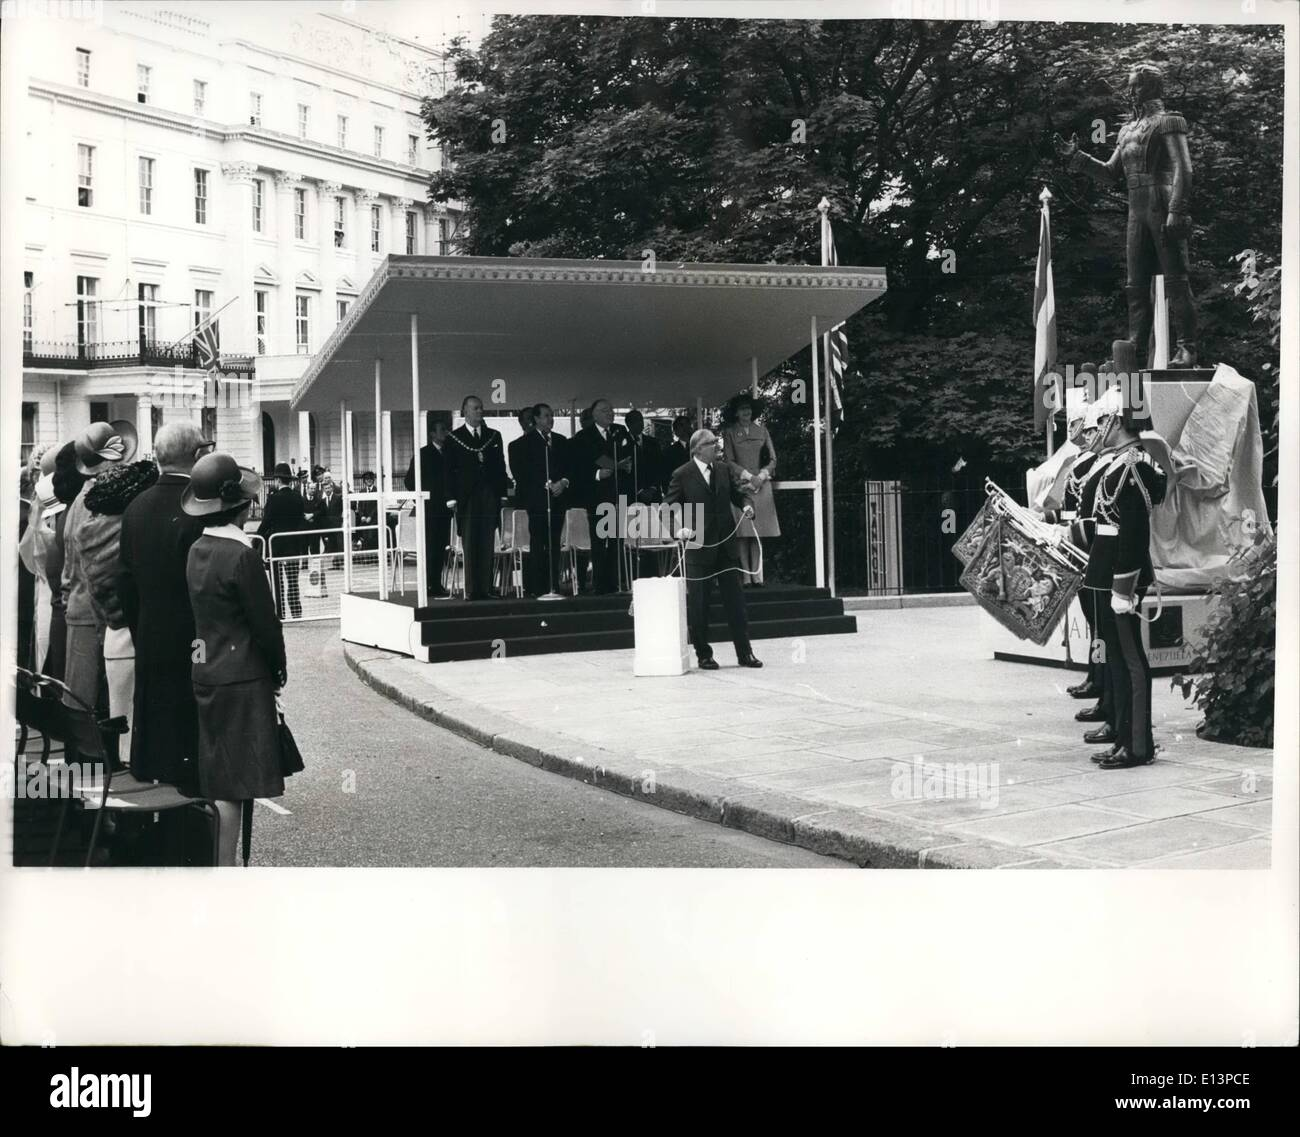 Mar. 22, 2012 - Boliver Statue Unveiled: James Callaghan, Britain's secretary of state for foreign and commonwealth affairs, seen as he unveiled the commorative statue to Simon Bolivar, in Belgrave Square, London, June 12th. - Stock Image